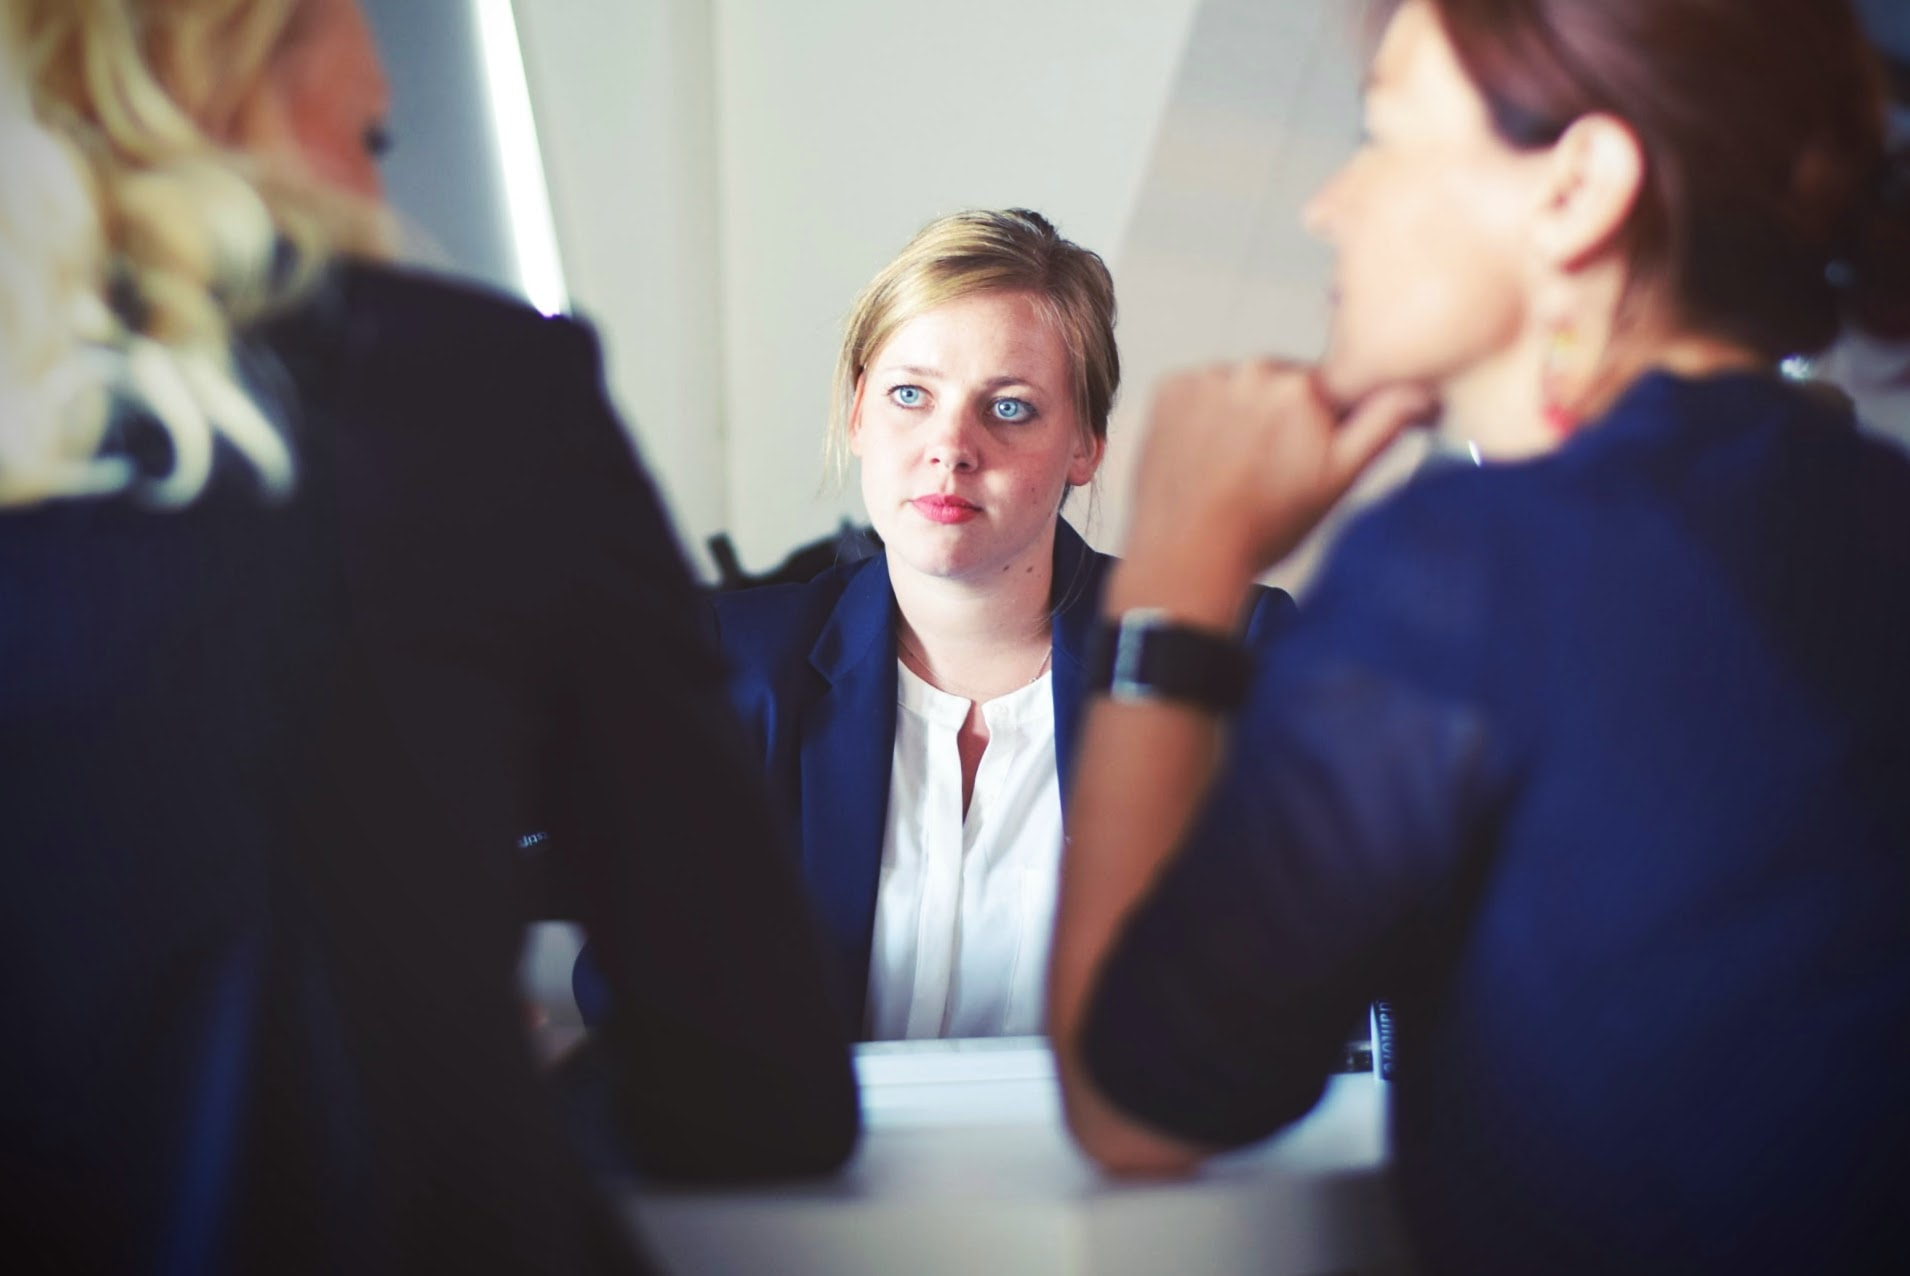 How to conduct an effective behavioural interview for candidates